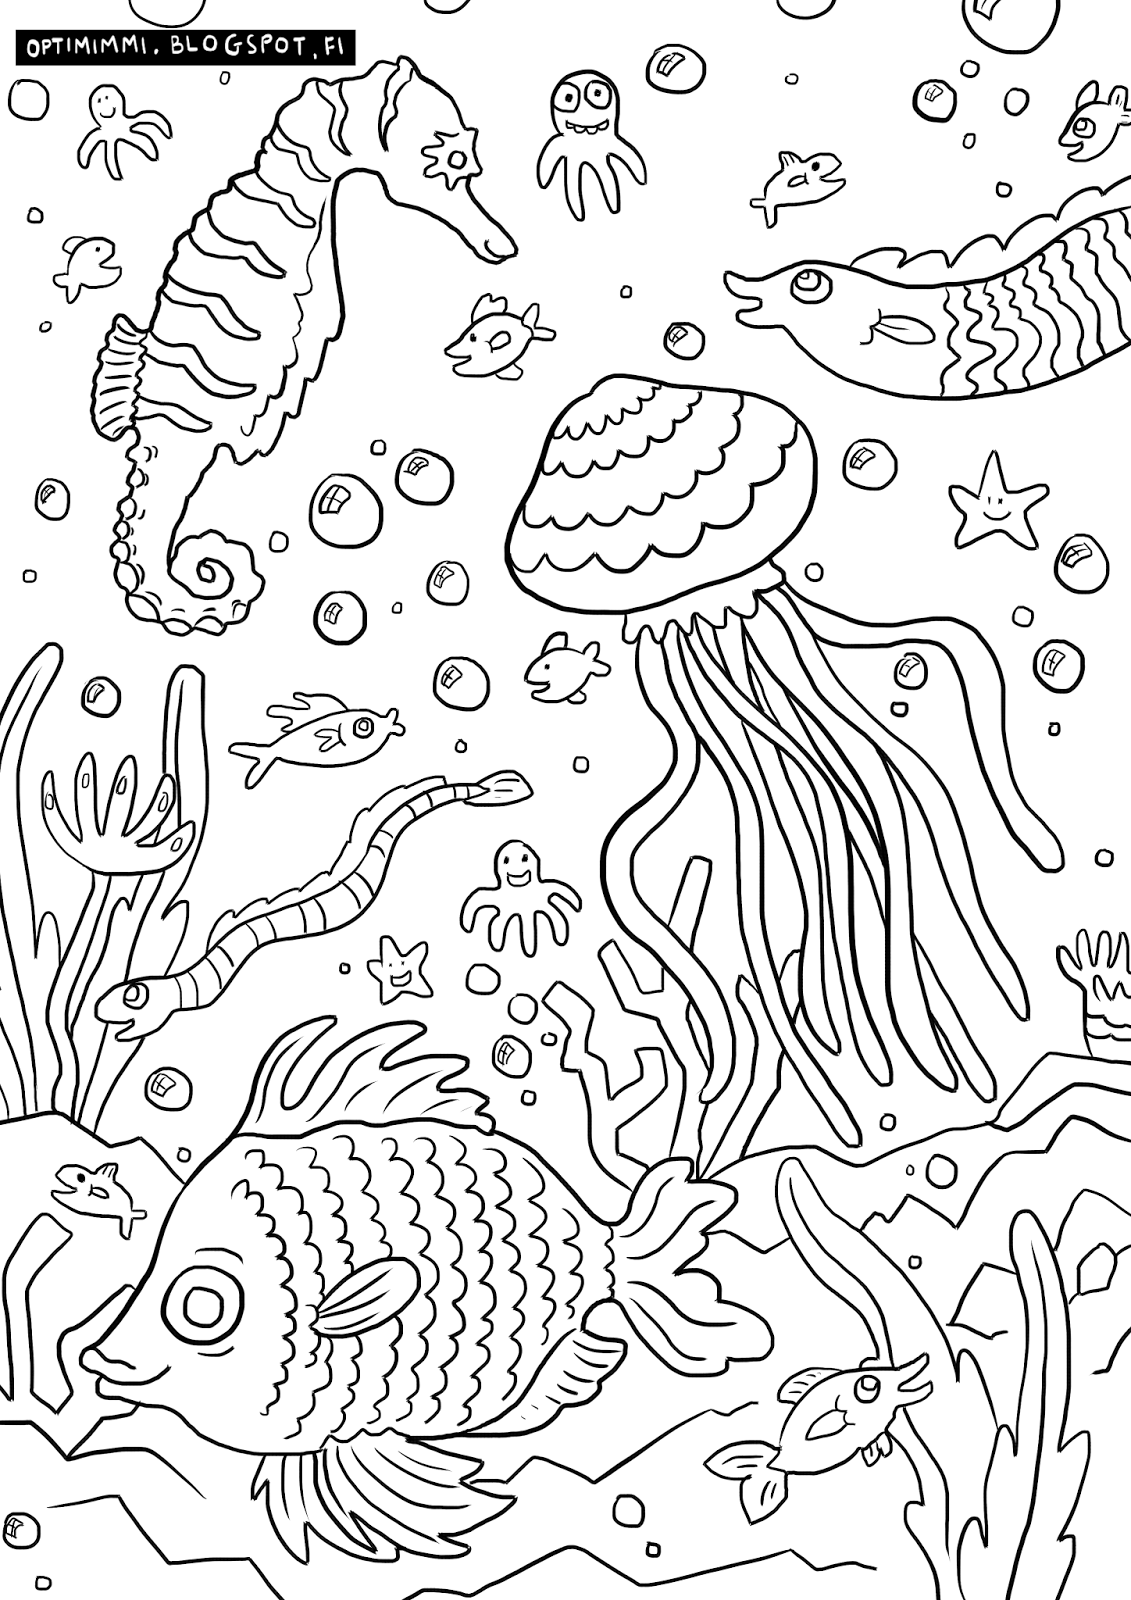 Coloring book varityskuvat - A Coloring Page Of Fishes In The Sea V Rityskuva Kaloista Meress